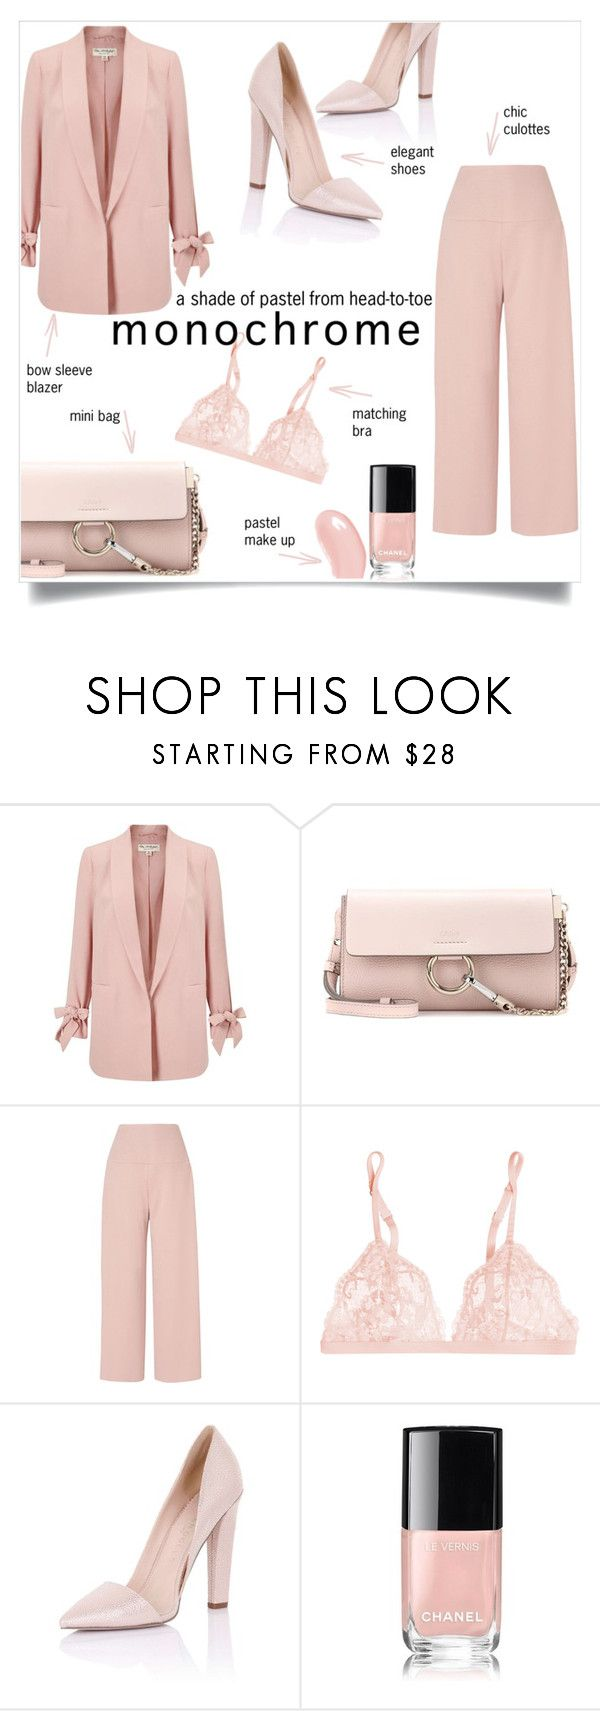 """""""Monochrome"""" by taniadeseptembre ❤ liked on Polyvore featuring Miss Selfridge, Chloé, L.K.Bennett, La Perla, Paper Dolls, Chanel, Christian Dior, monochrome and pastels"""